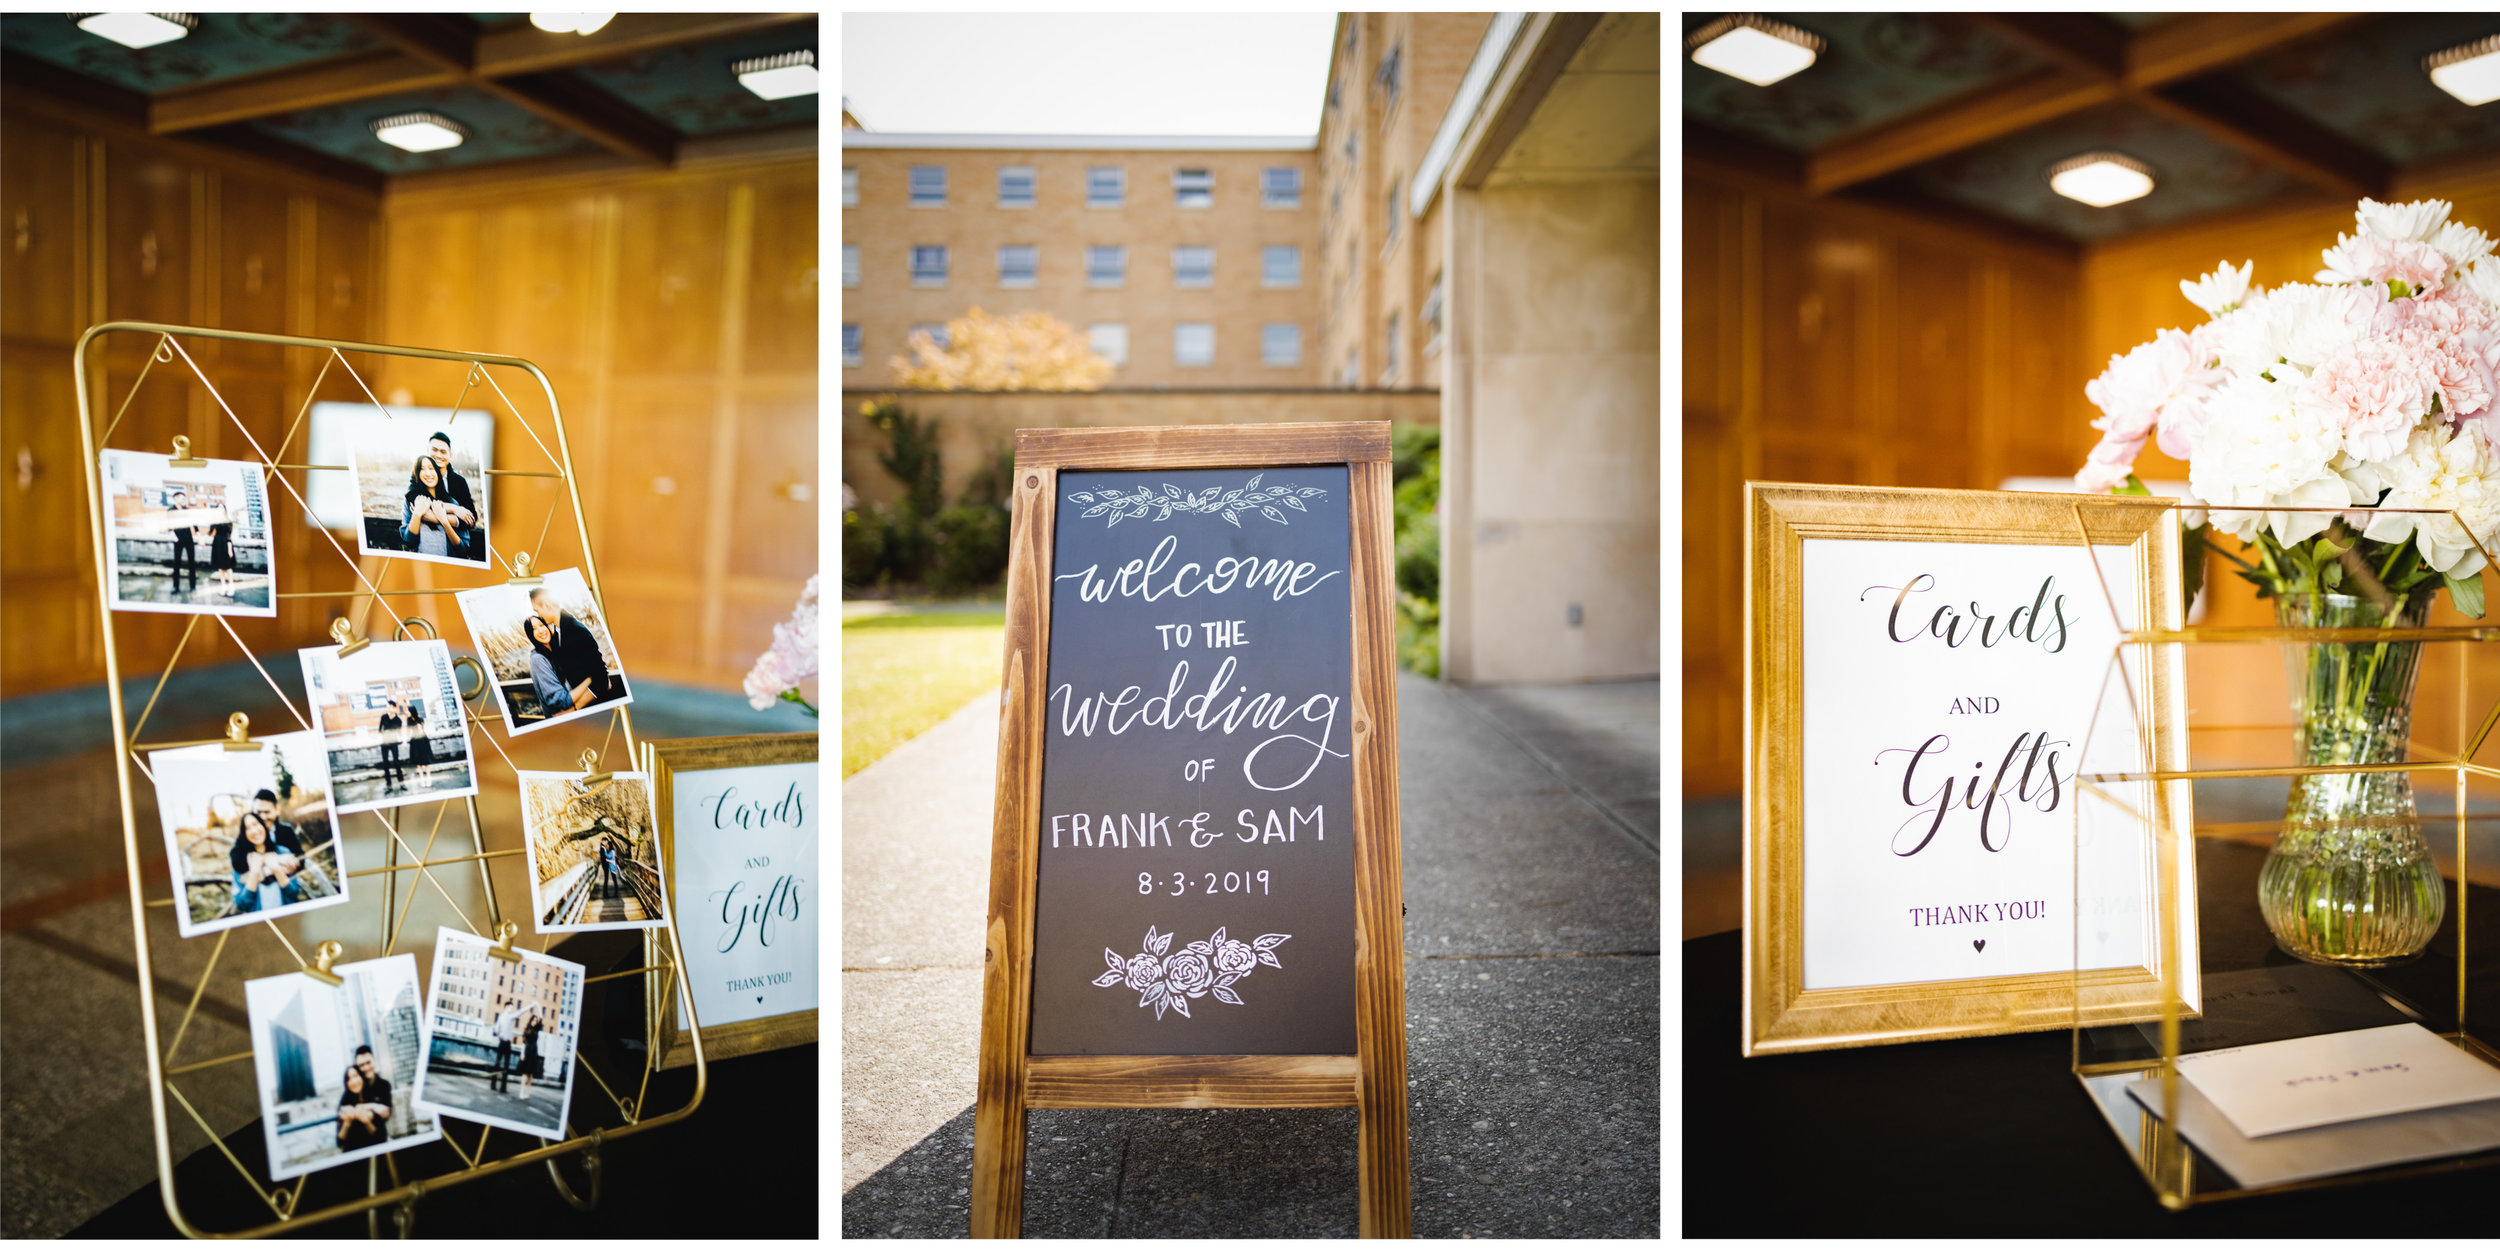 Welcome Signs and decoration.jpg